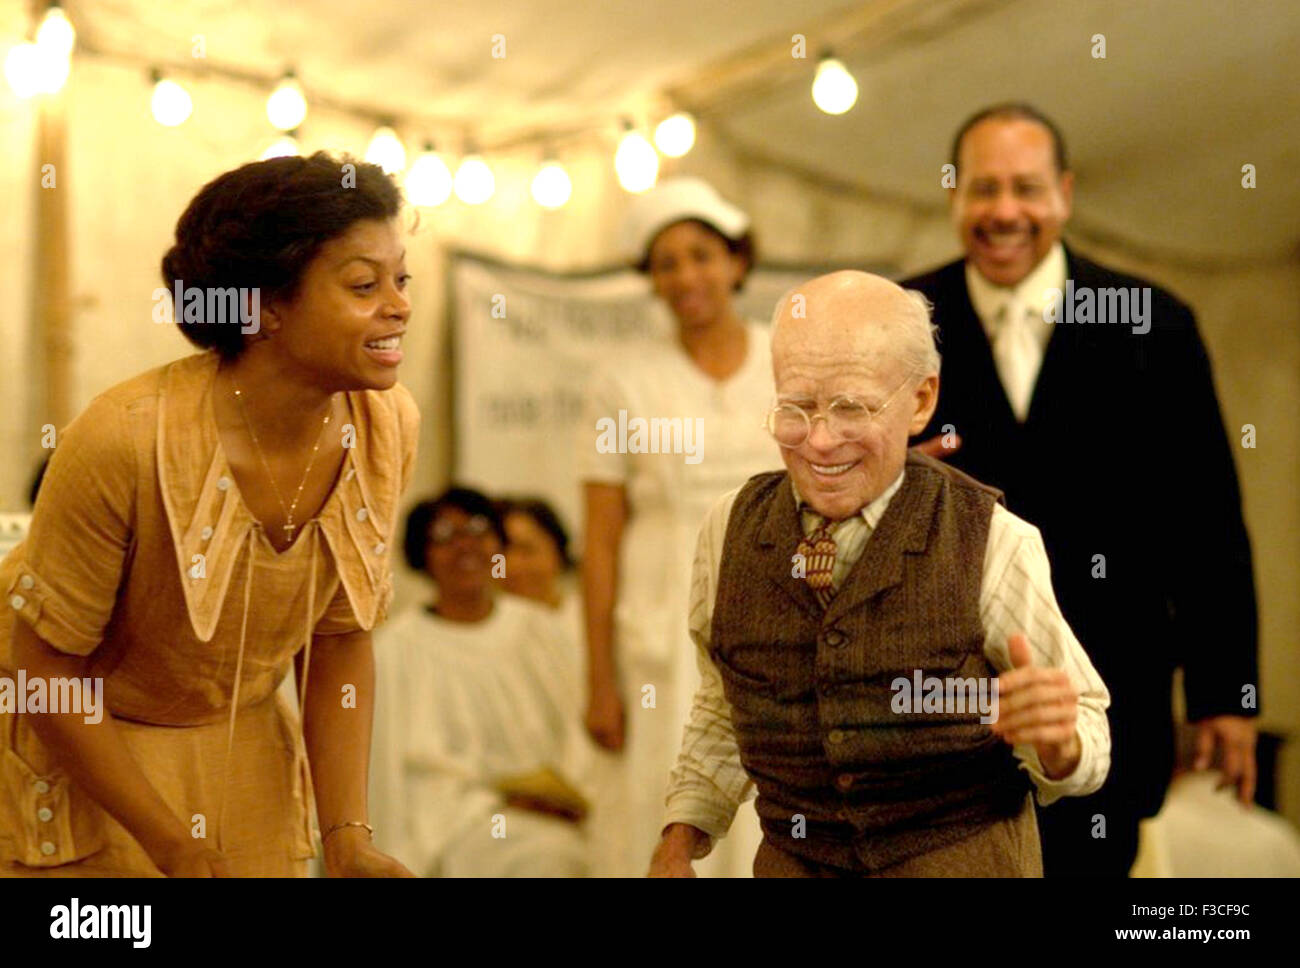 The Curious Case Of Benjamin Button 2008 Paramount Pictures Film With Stock Photo Alamy